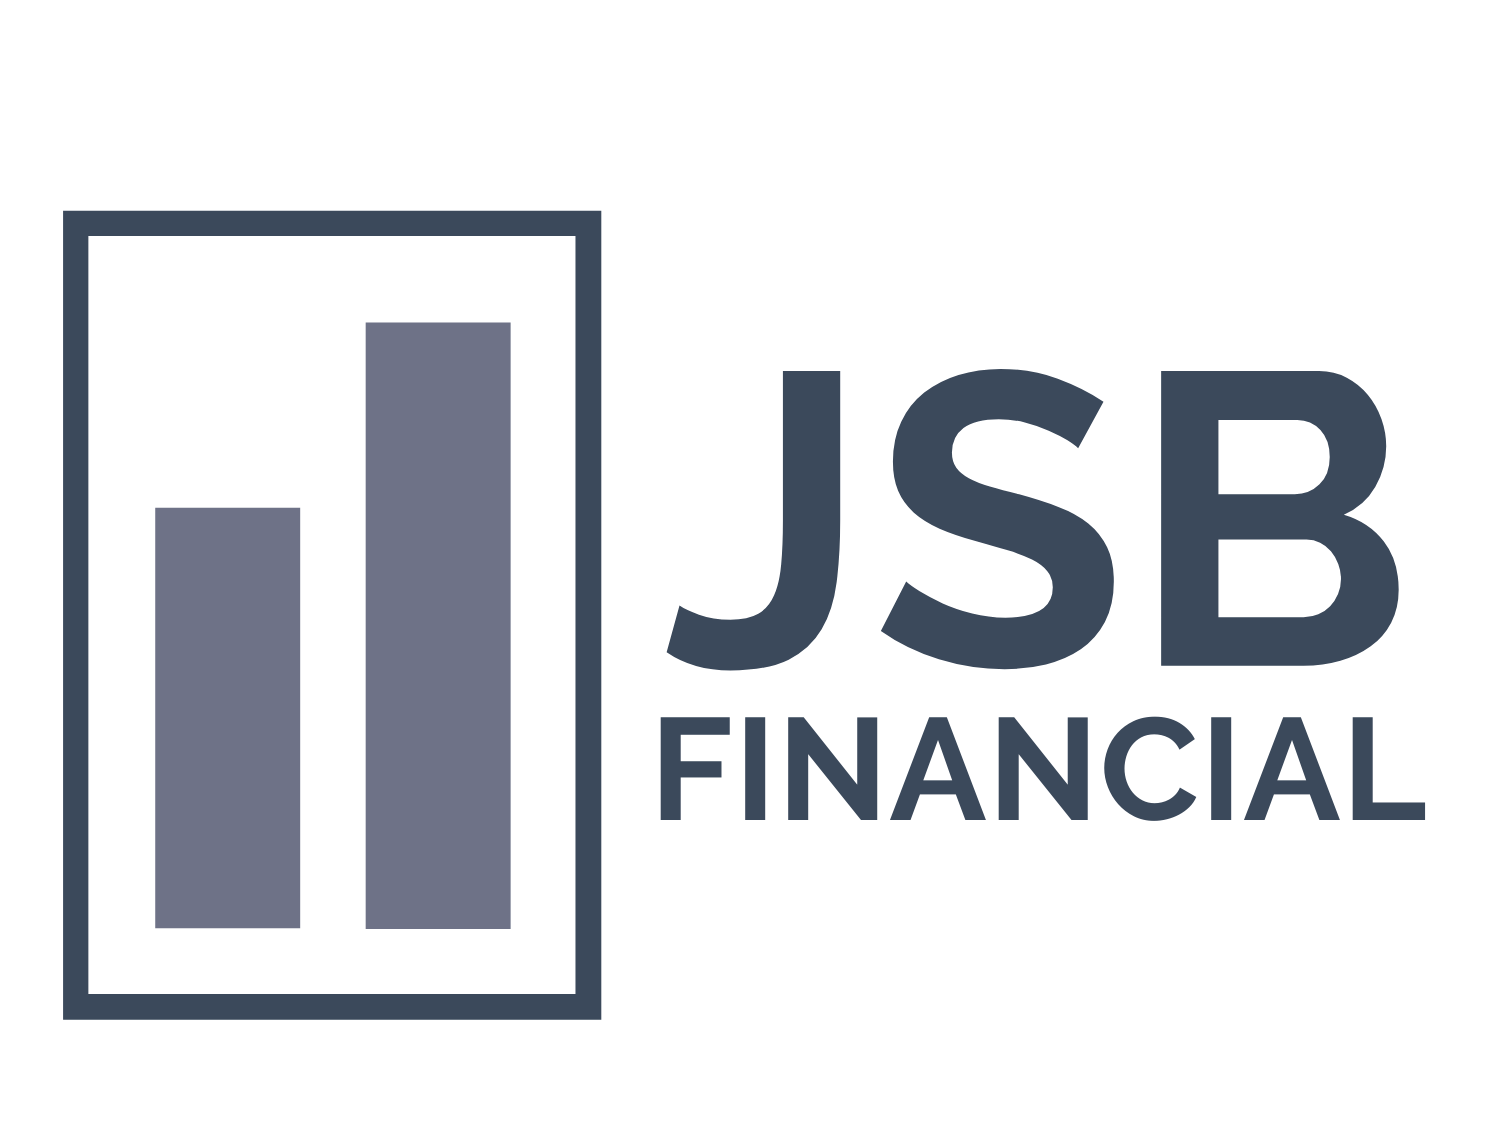 JSB Financial